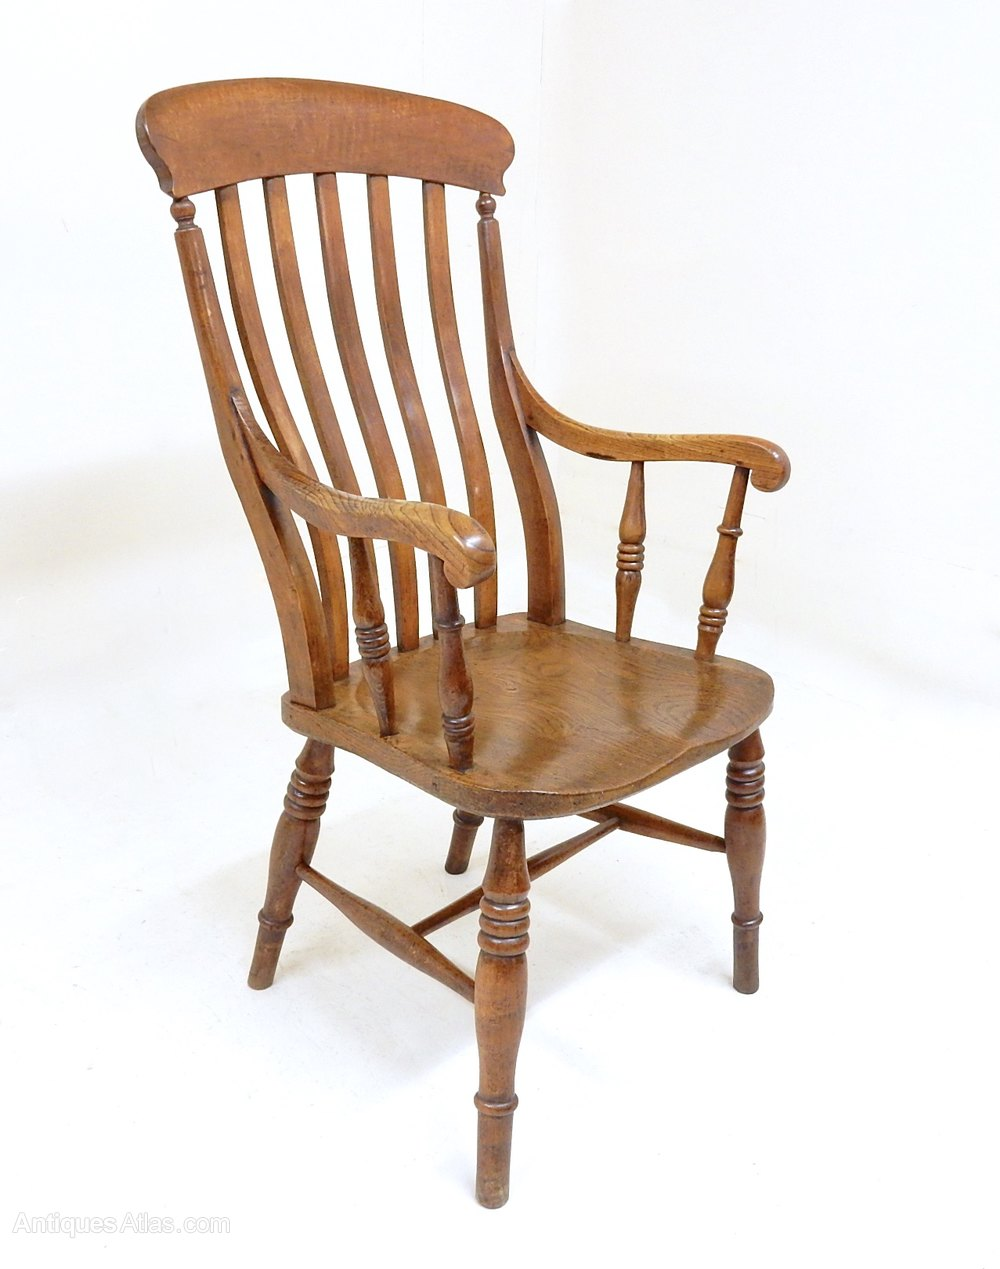 Antique Country Armchair - Antiques Atlas